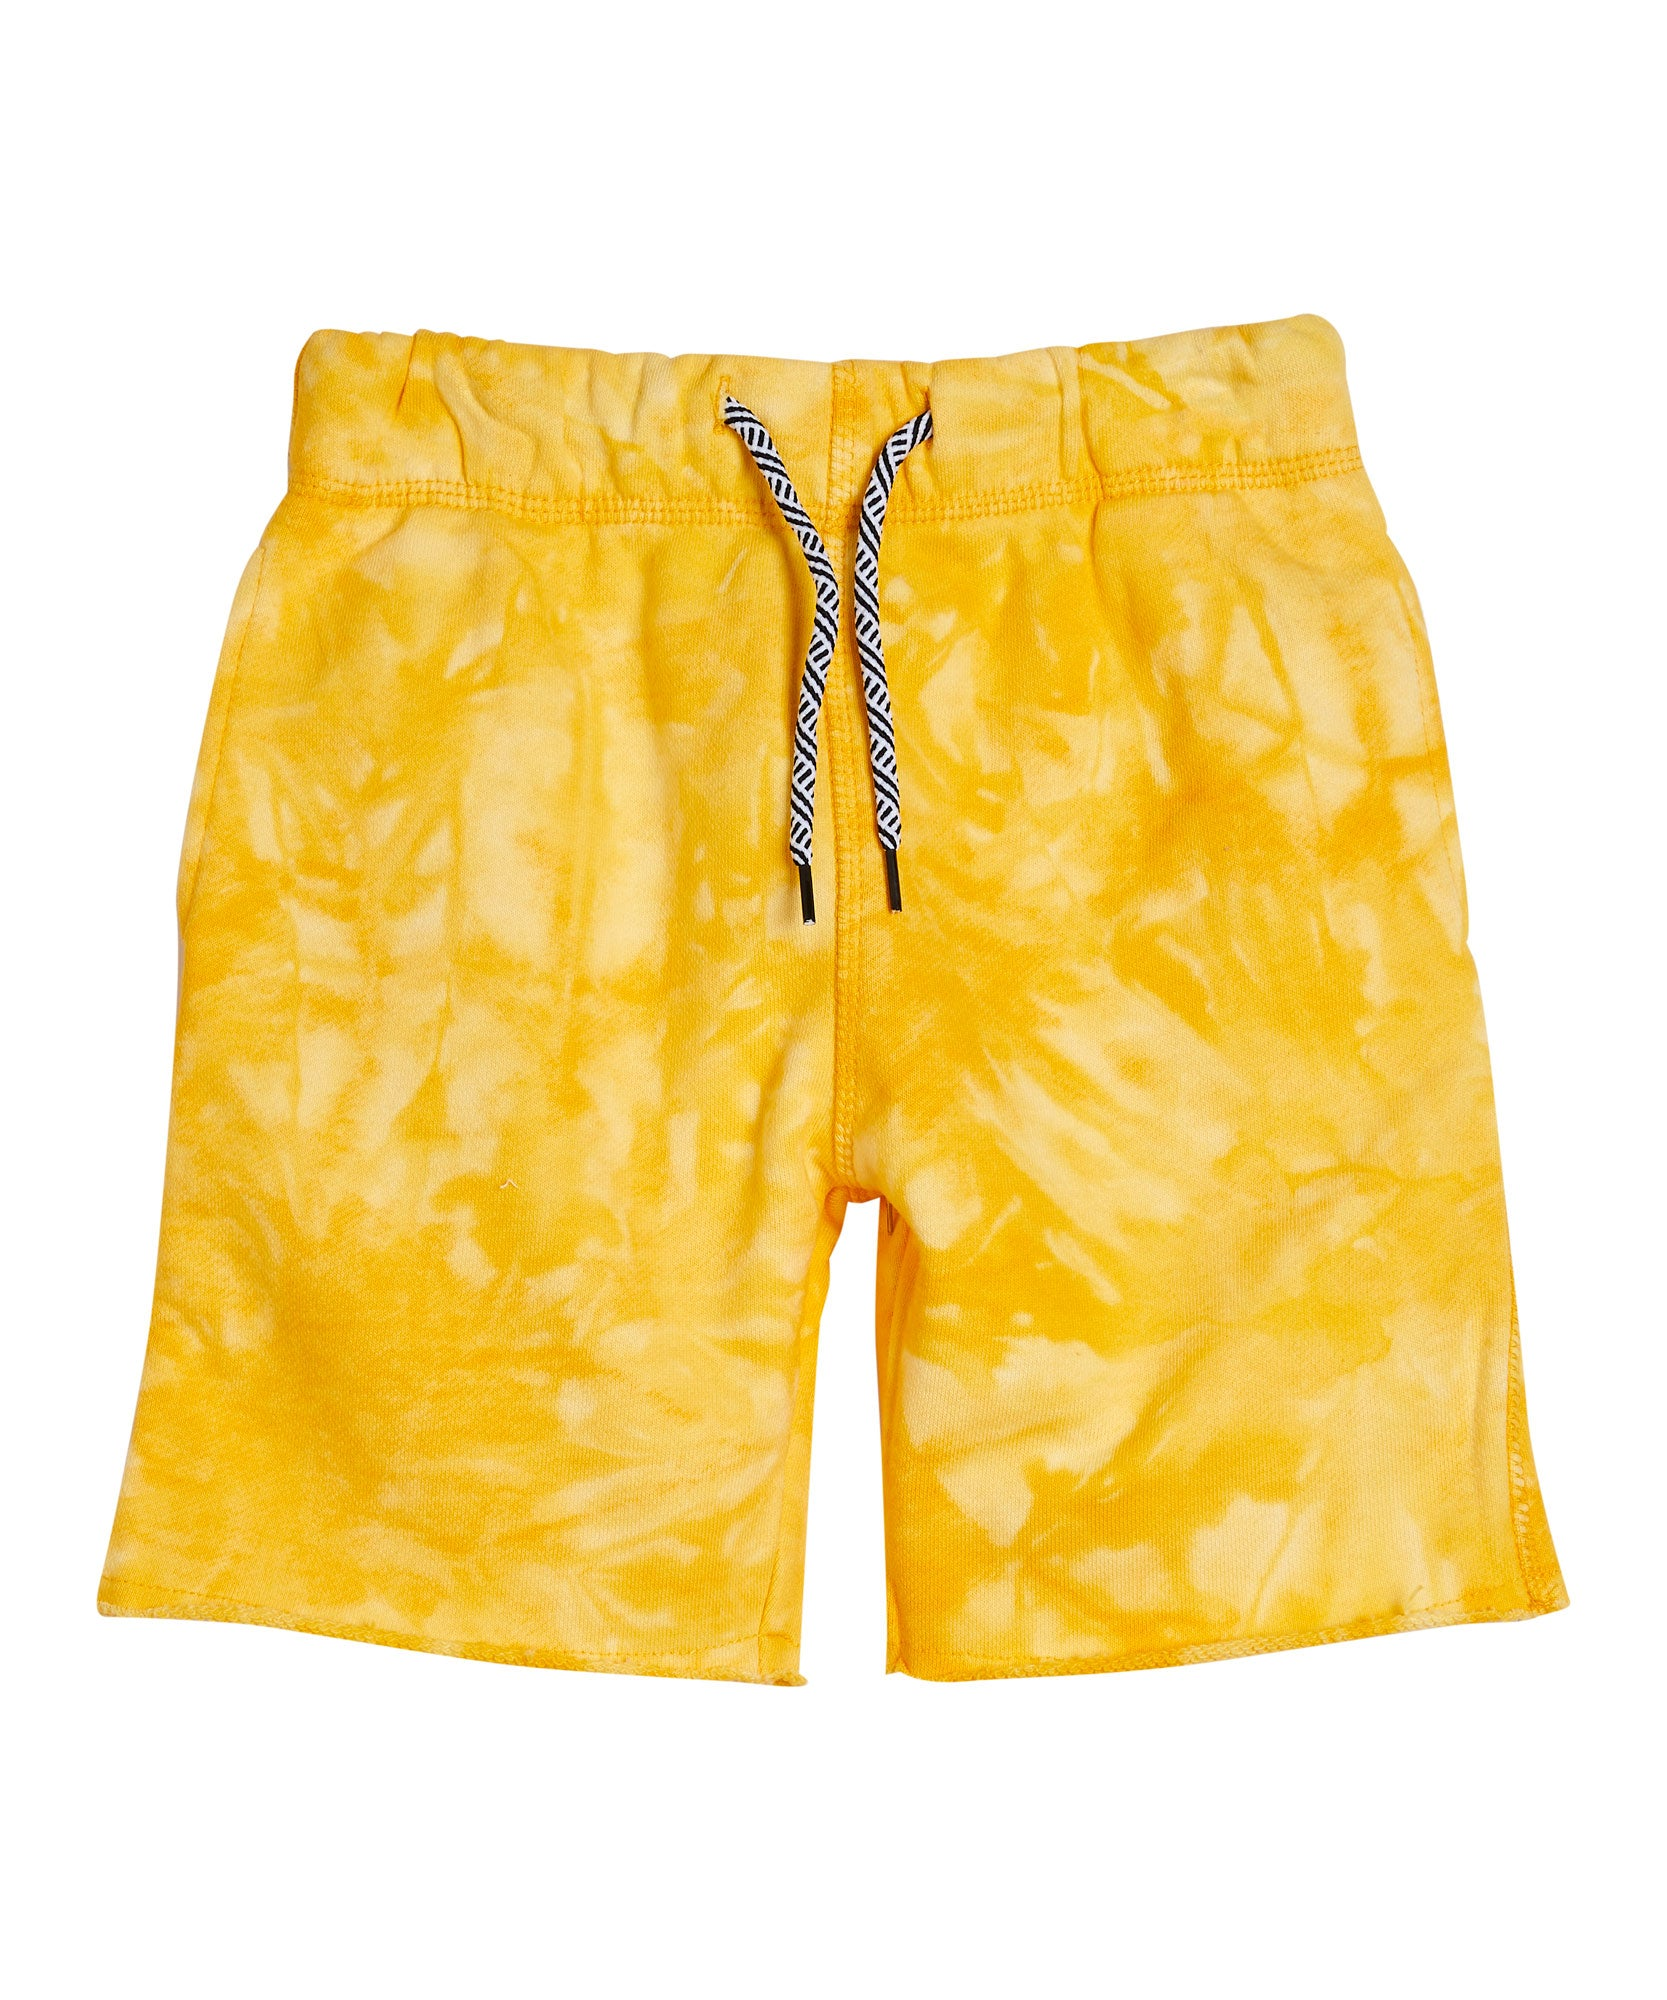 Appaman Camp Tie Dye Shorts